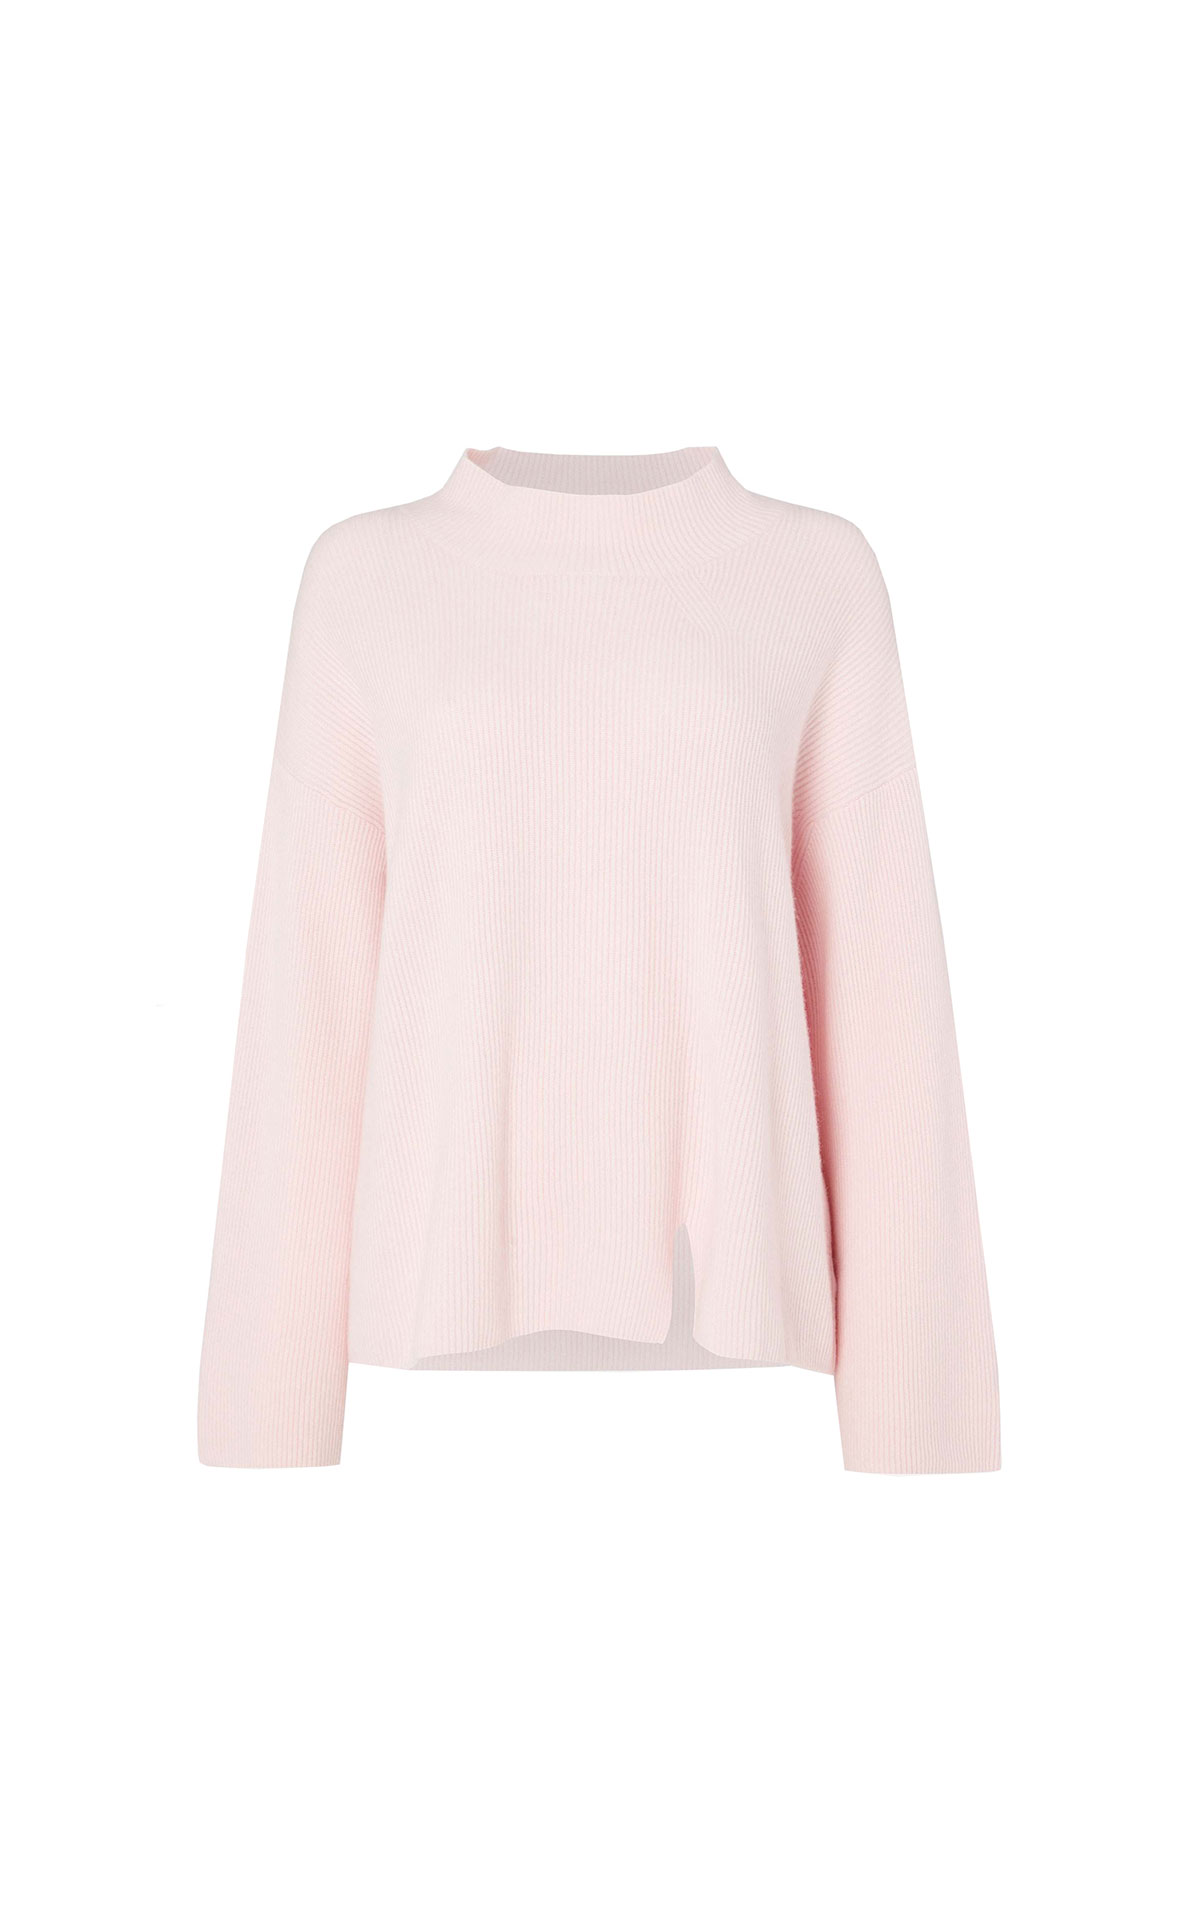 N.Peal Ladies cardigan stitch funnel neck from Bicester Village